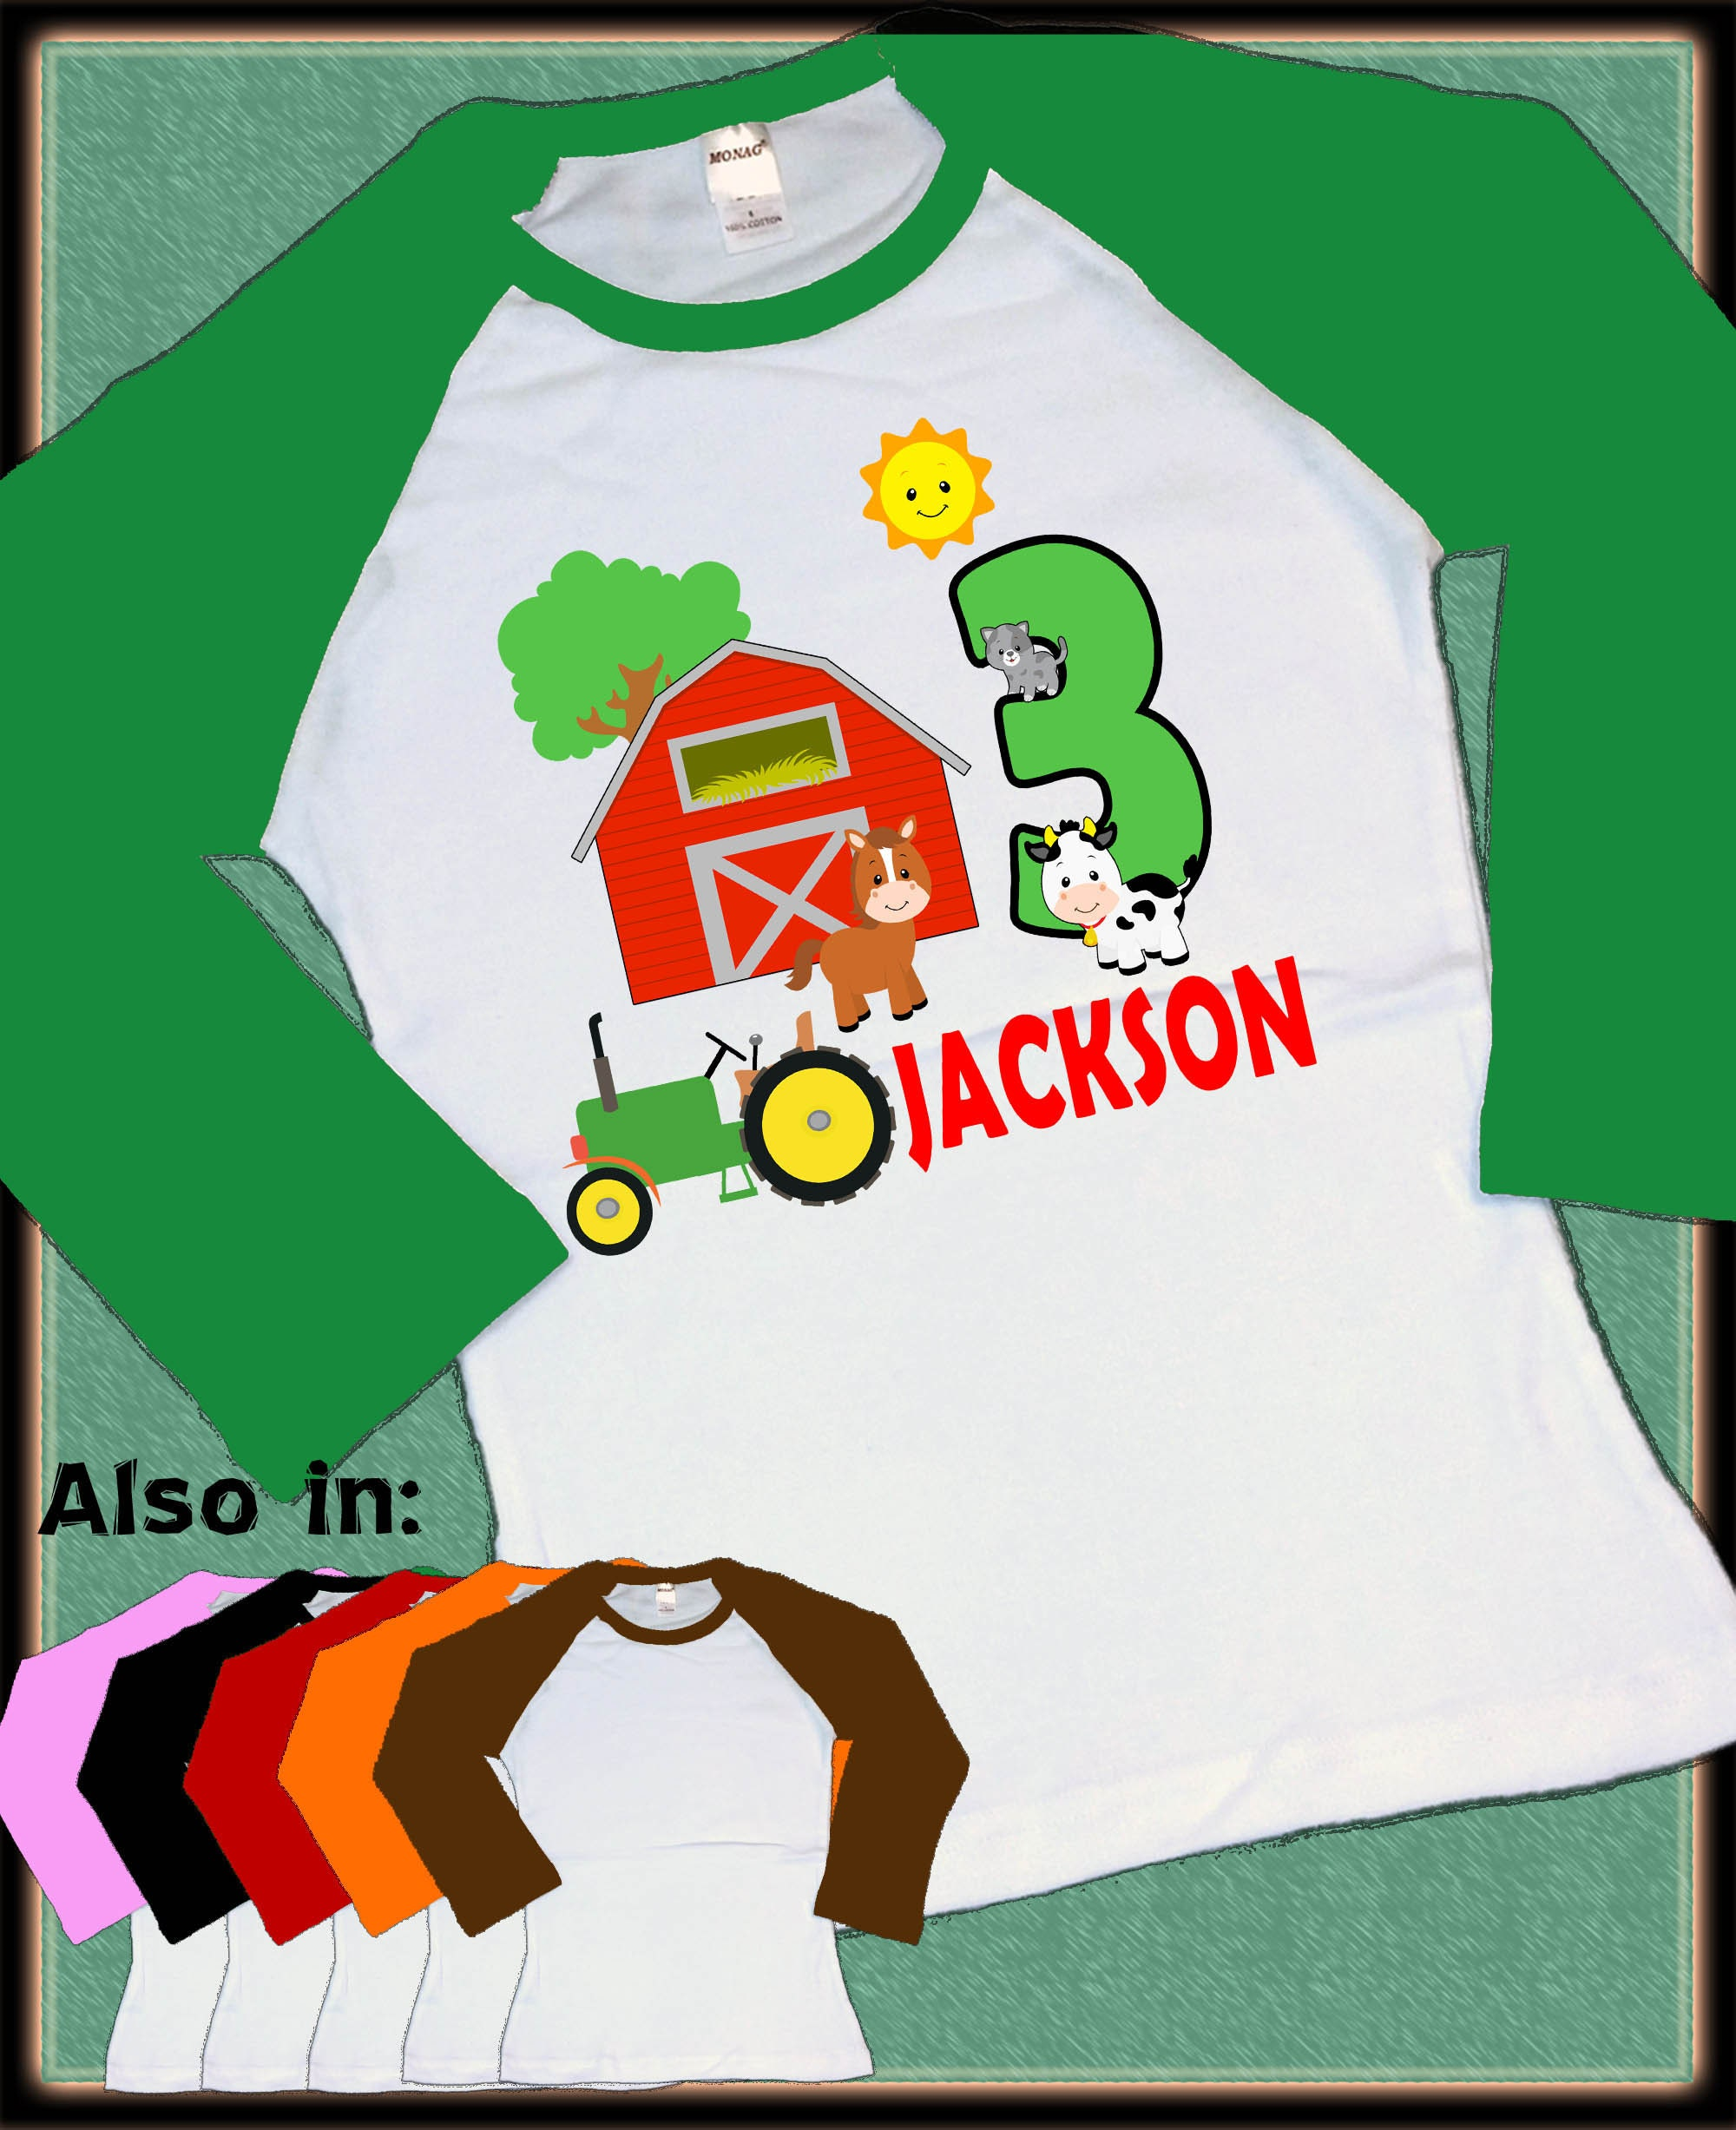 ede58e2f Tractor Birthday Shirt - Tractor Big Number Birthday Red Tractor Raglan  Shirt Personalized with name age farming theme design